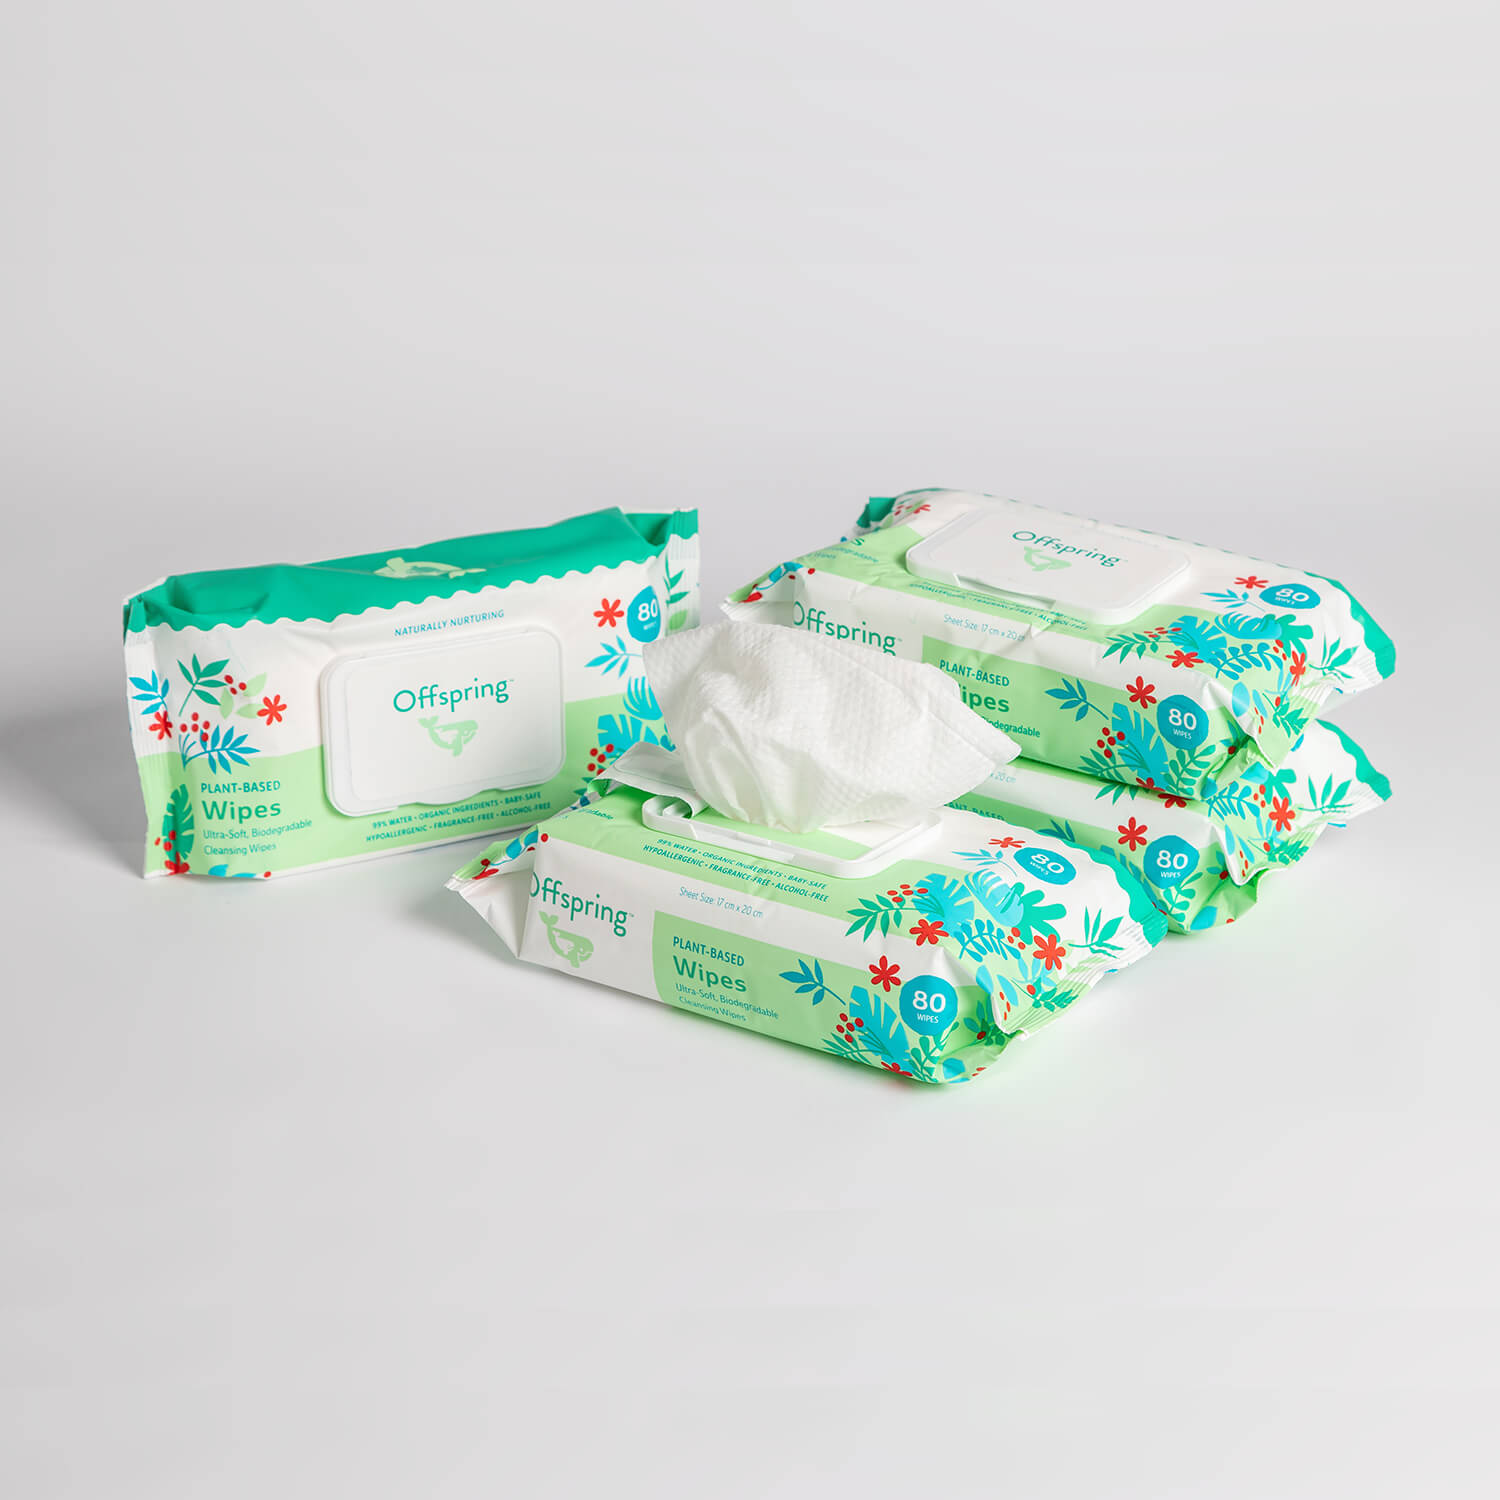 Plant-Based Wipes 80ct